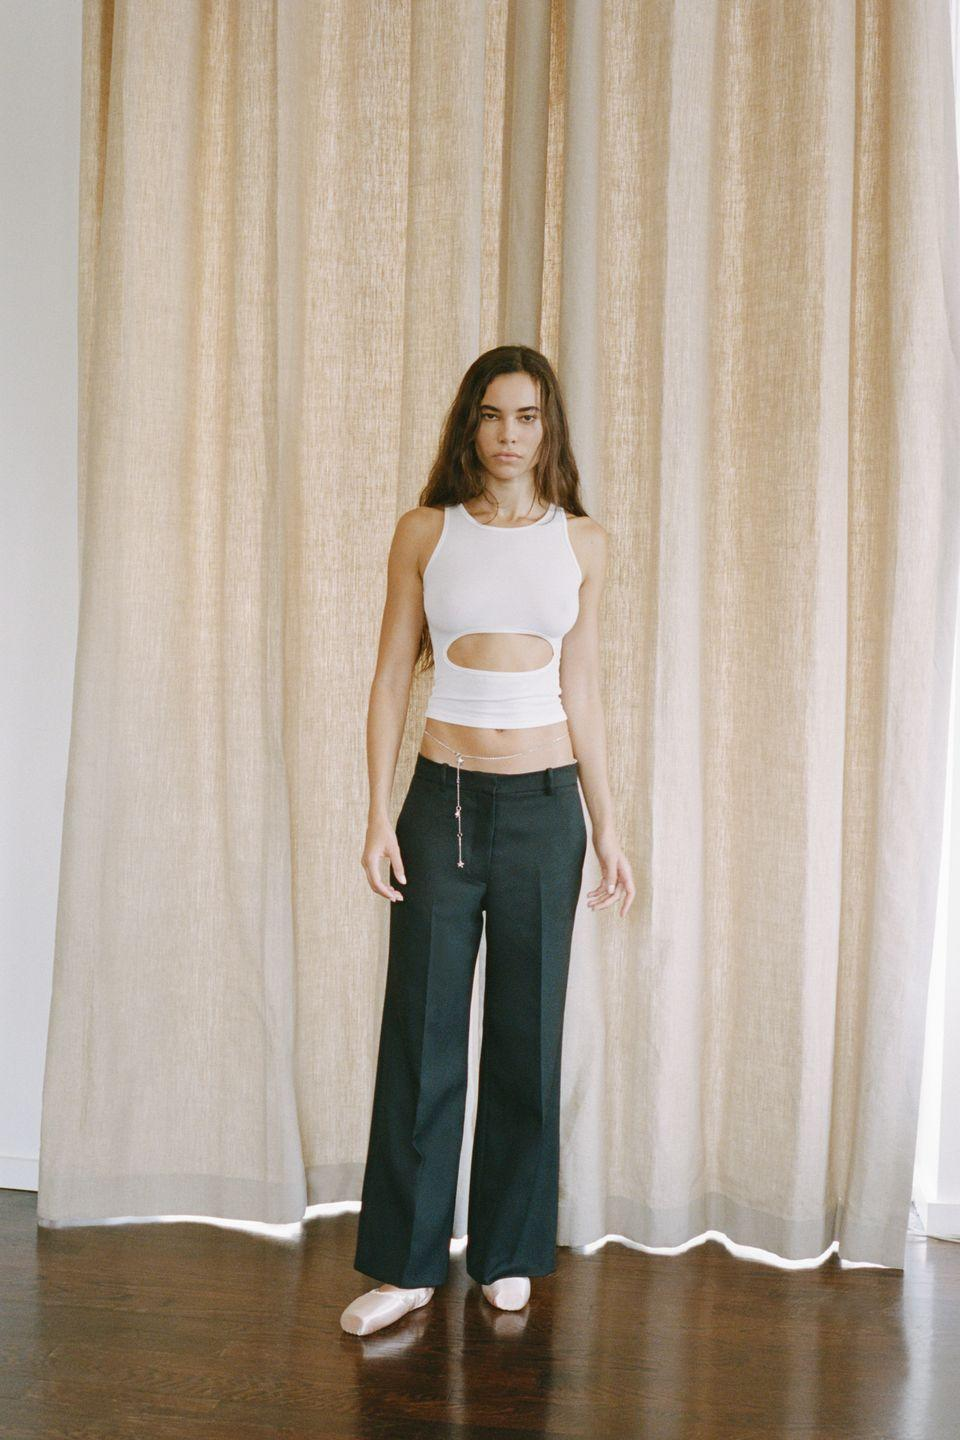 """<p>Sandy Liang often finds inspiration from nostalgia, looking back to look forward—but not too far back in time. The designer tends to look toward her youth for inspiration, but for Spring 2021, she focused on her current mood as much as her obsessions from the past. While many of the collections this season stood to be stifled by the pandemic pause, Liang noted that this time, she had """"more time to breathe, to think and draw freely."""" That freedom resulted in separates we'd all want to wear during and post lockdown, as well as a cheeky """"Margot print"""" that graced dresses, tops, and skirts—designed in collaboration with Rabin. The print is an ode to Liang's forever inspiration Margot Tenenbaum and Ponyo (a Japanese cartoon), and sat well with the micro mini skirts, gingham, and a fleece jacket with Lisa Frank-esque blooms down the sleeves. Other notes on nostalgia the designer embraced included super low-rise bottoms, cheerleader-style tennis skirts, and pieces that riffed on the standard crop top. <em>—Carrie Goldberg</em></p>"""